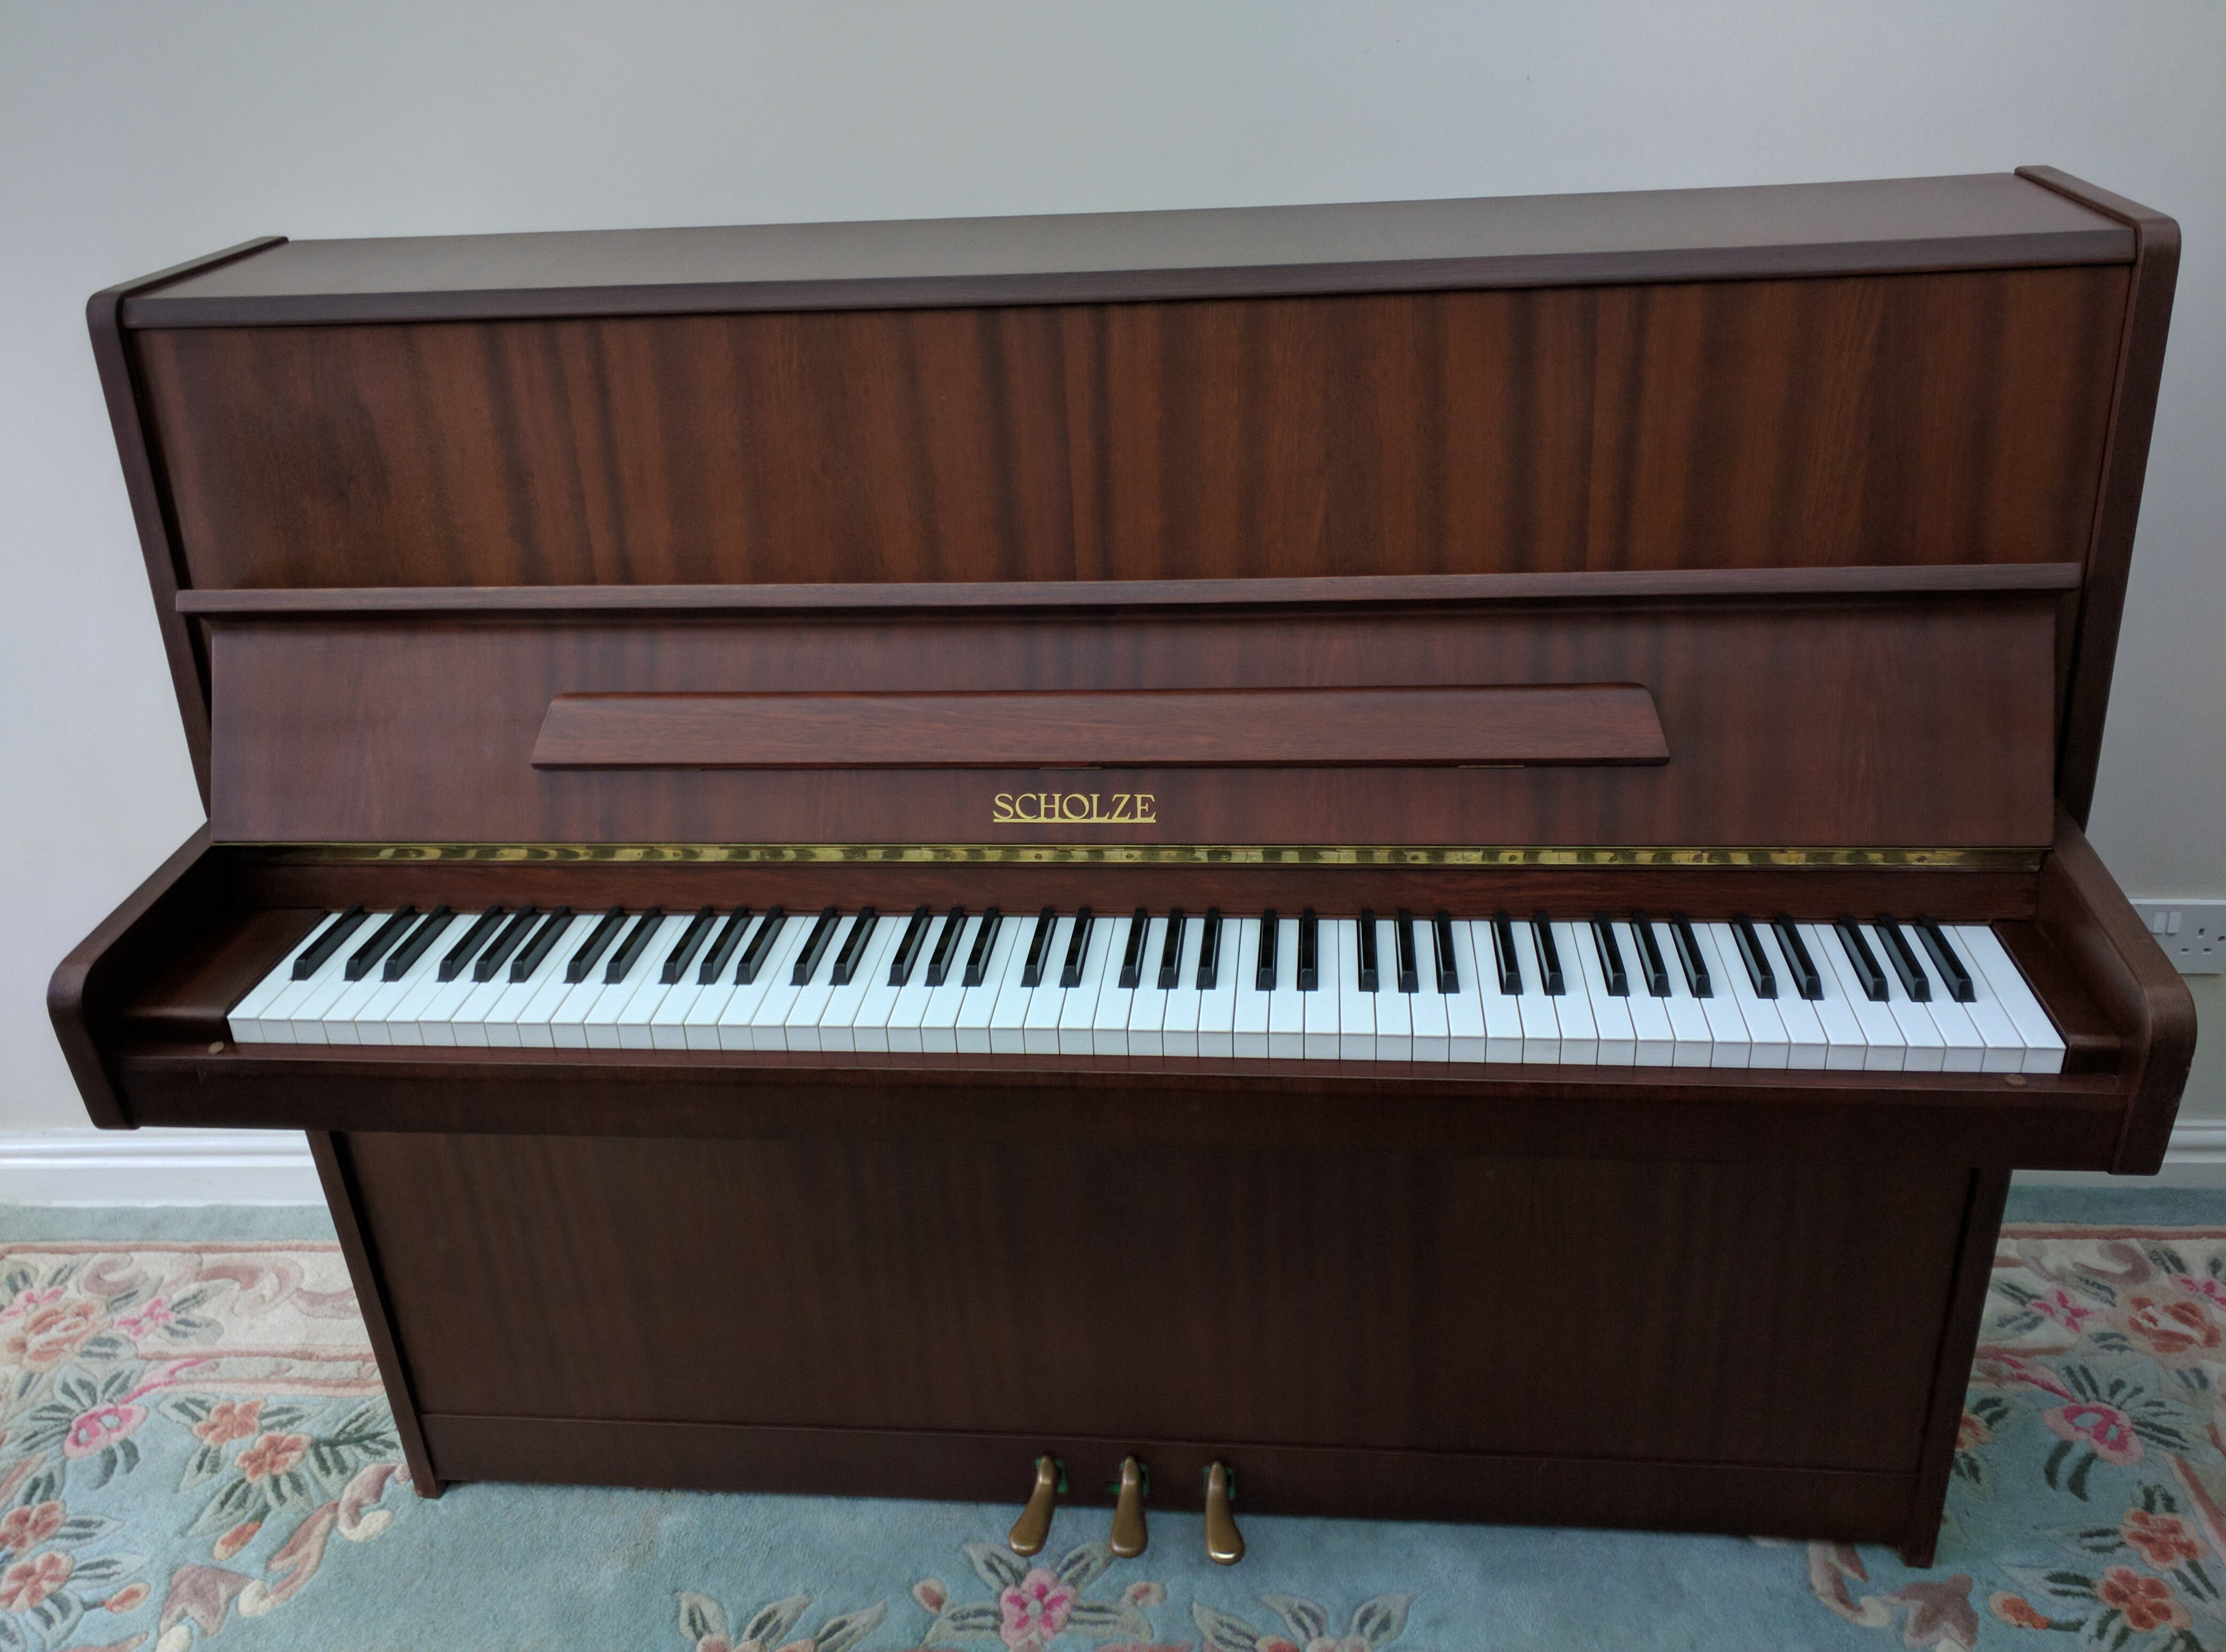 Scholze Upright Piano (made by Petrof)